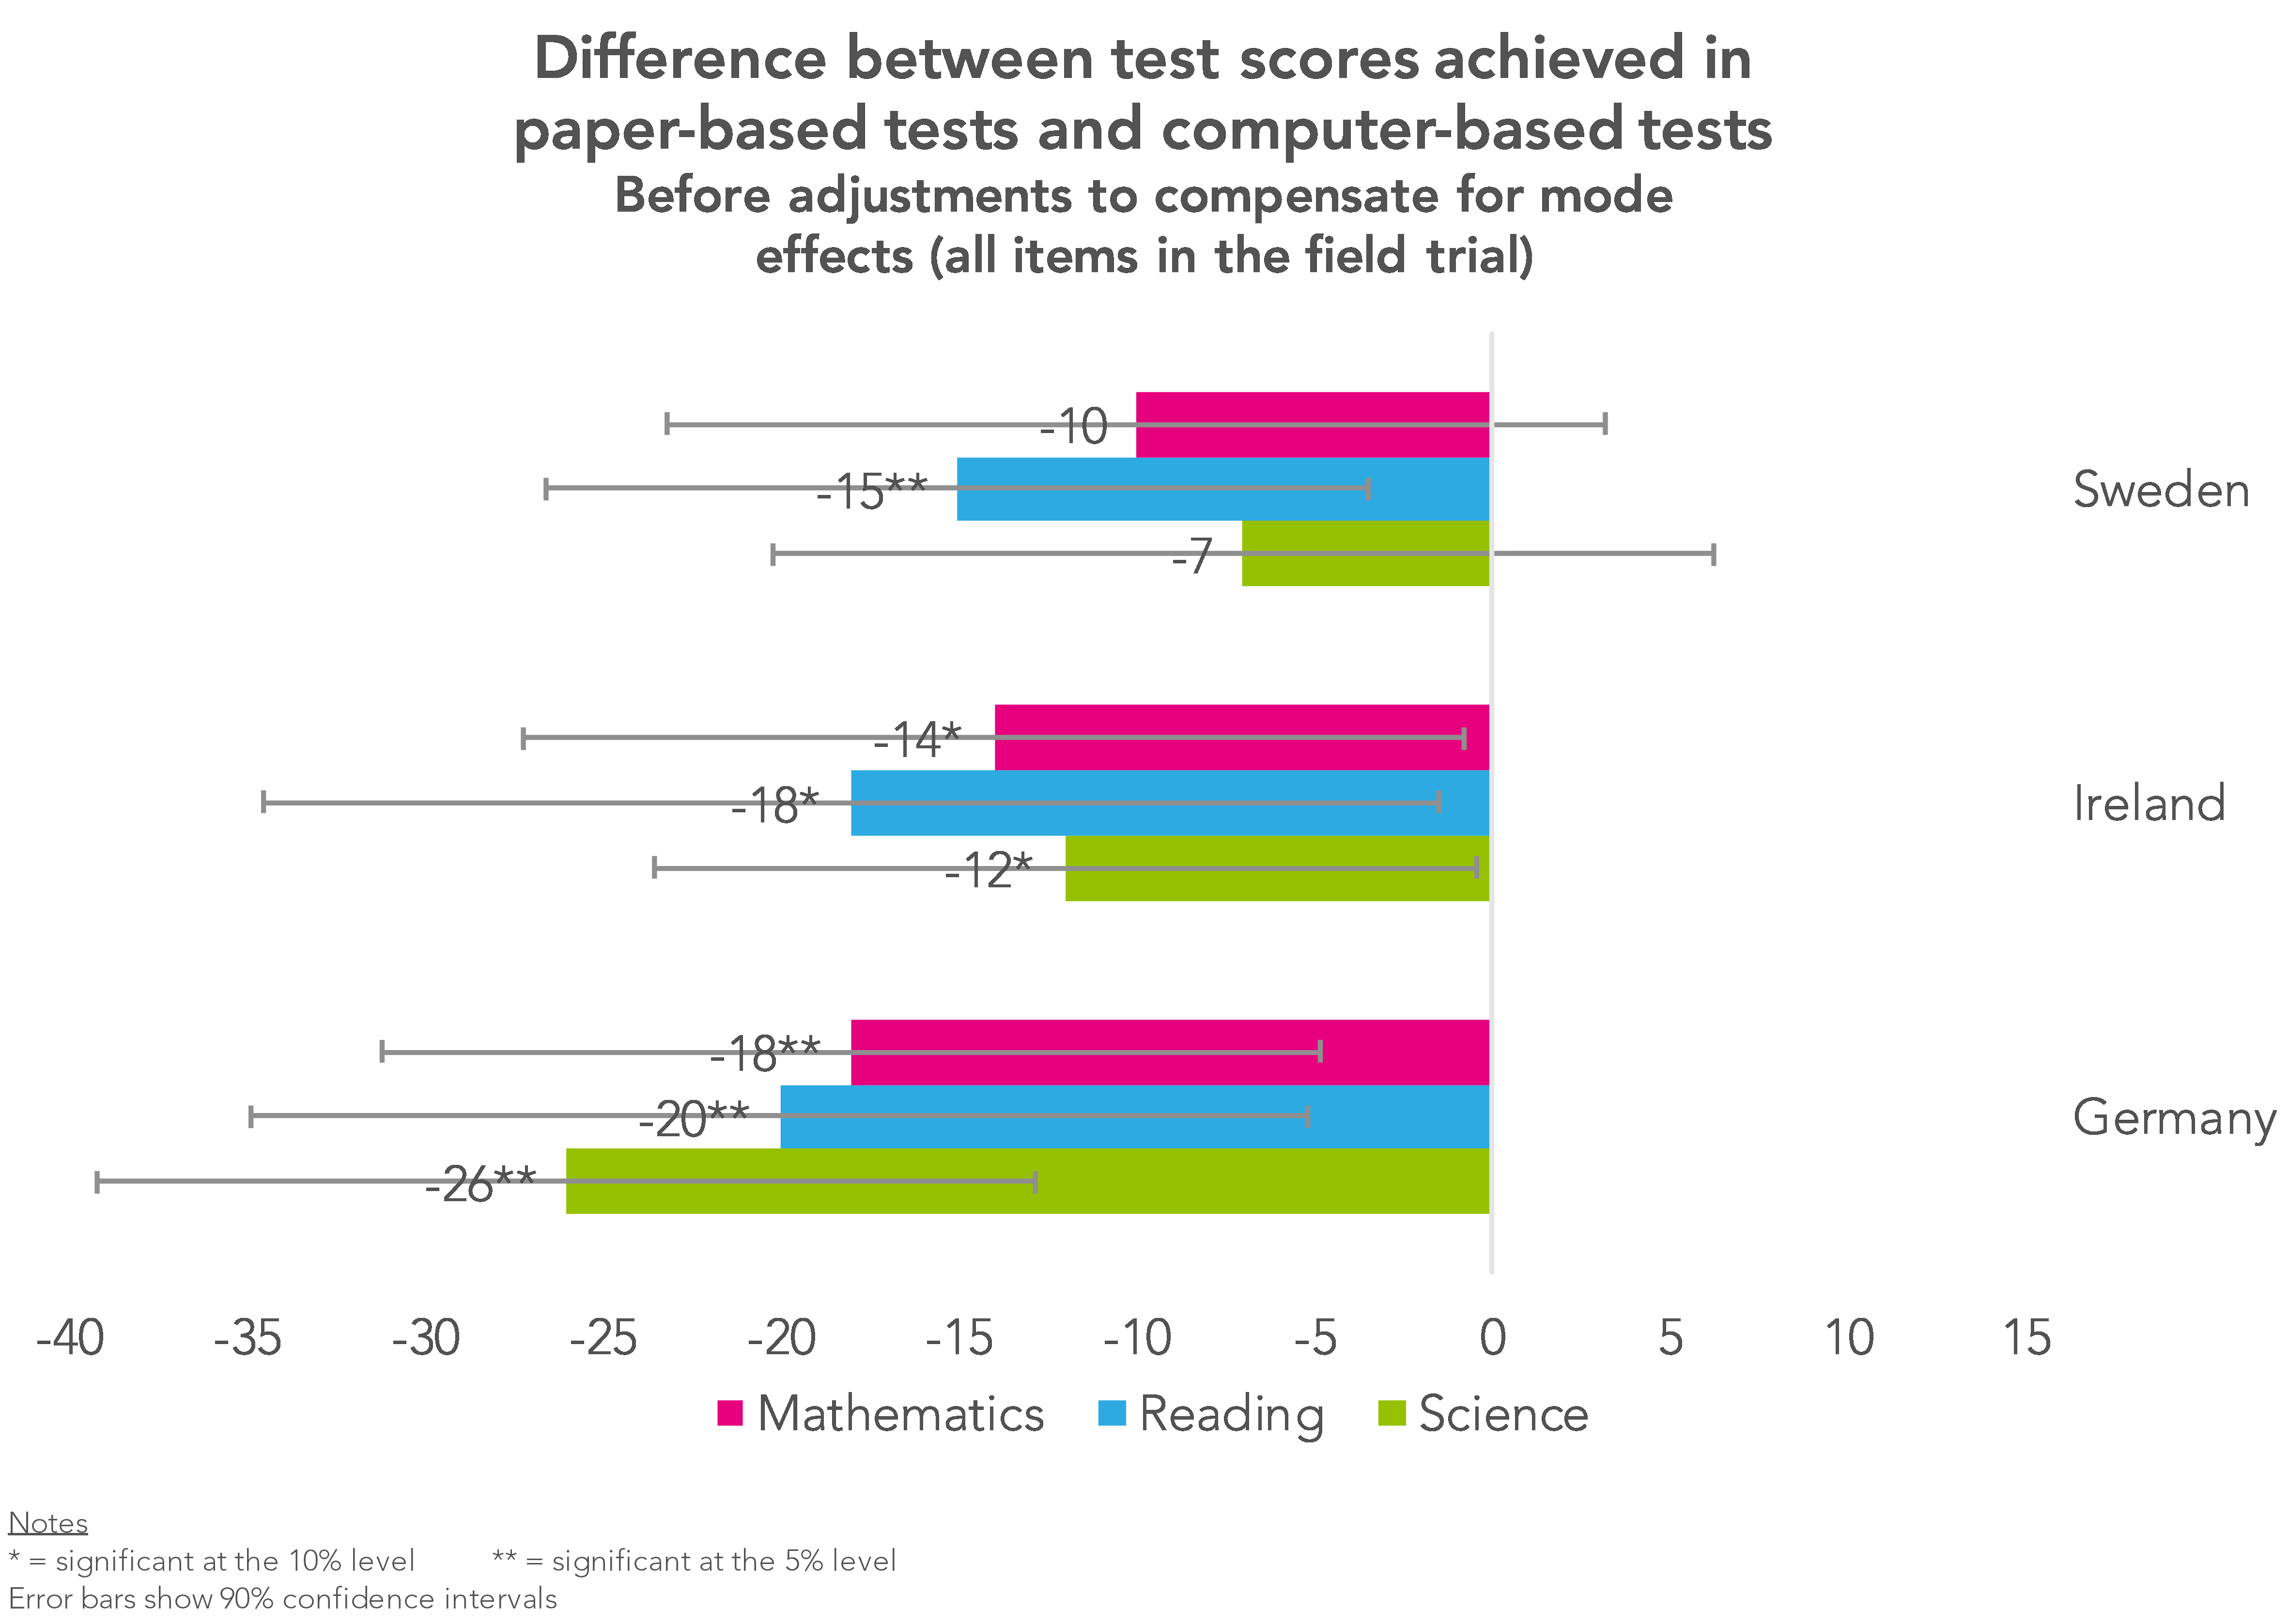 Is PISA still a fair basis for comparison? Some serious questions have emerged